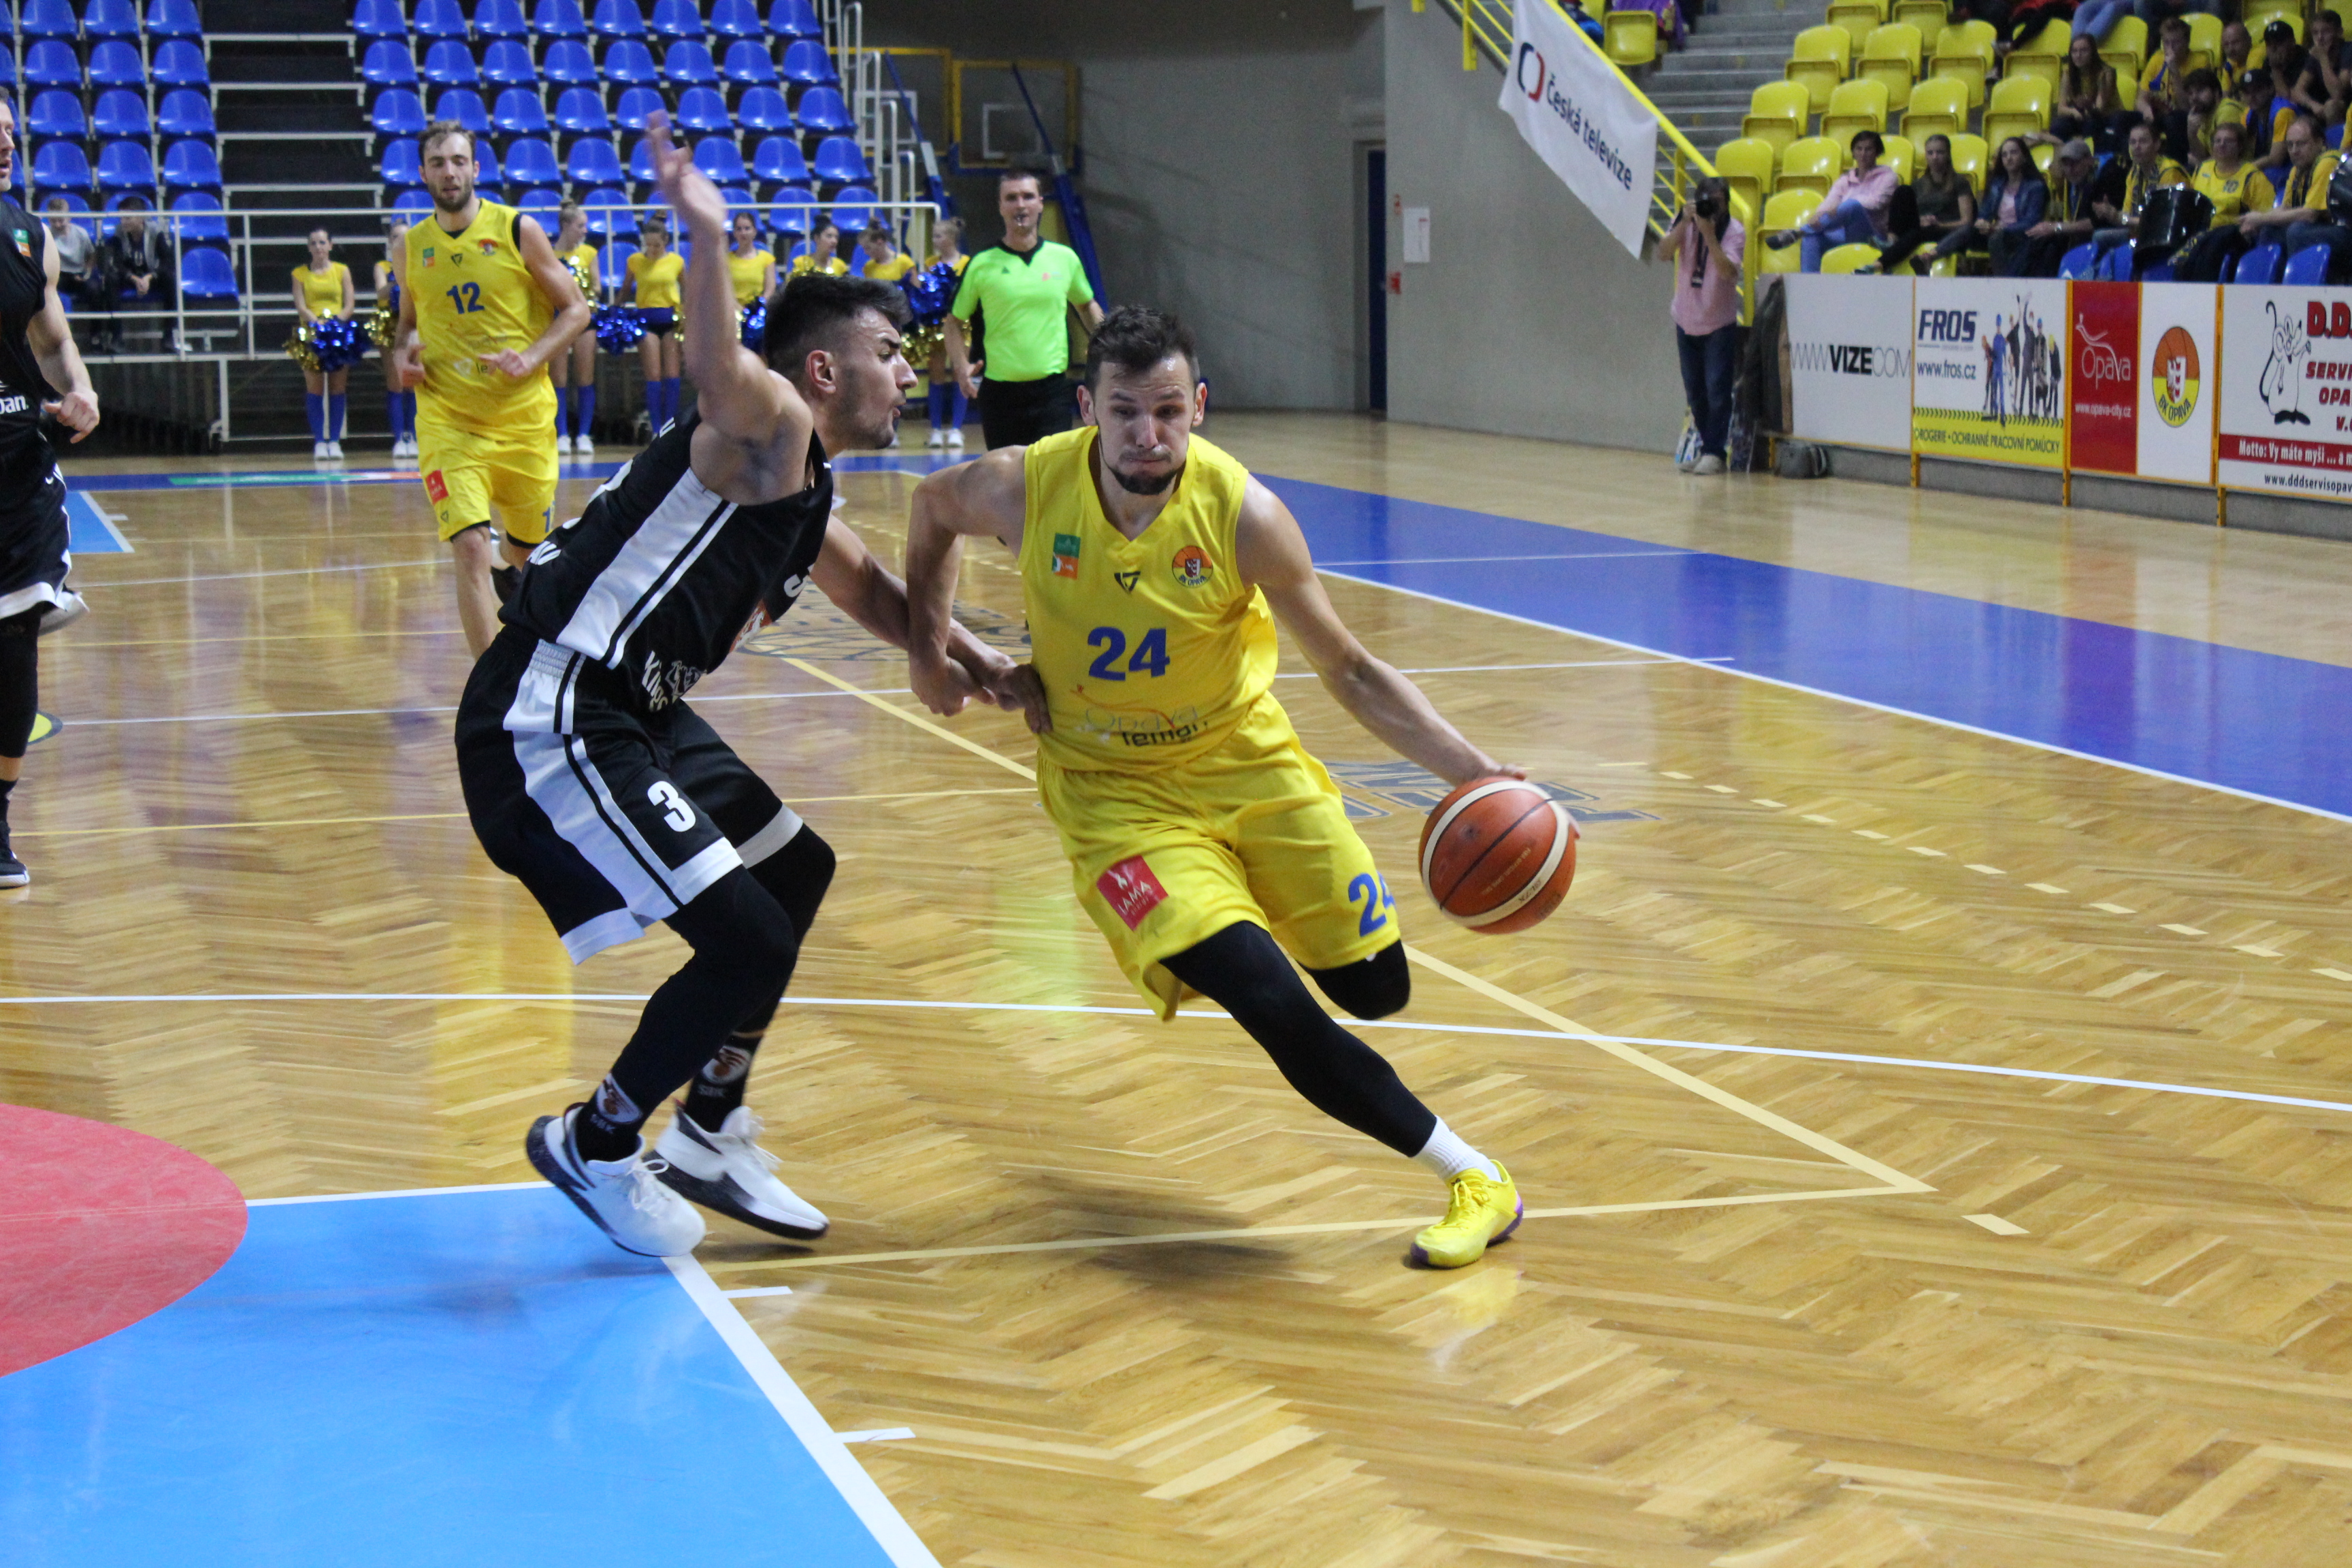 Opava s 19 trojkami do Final Four!